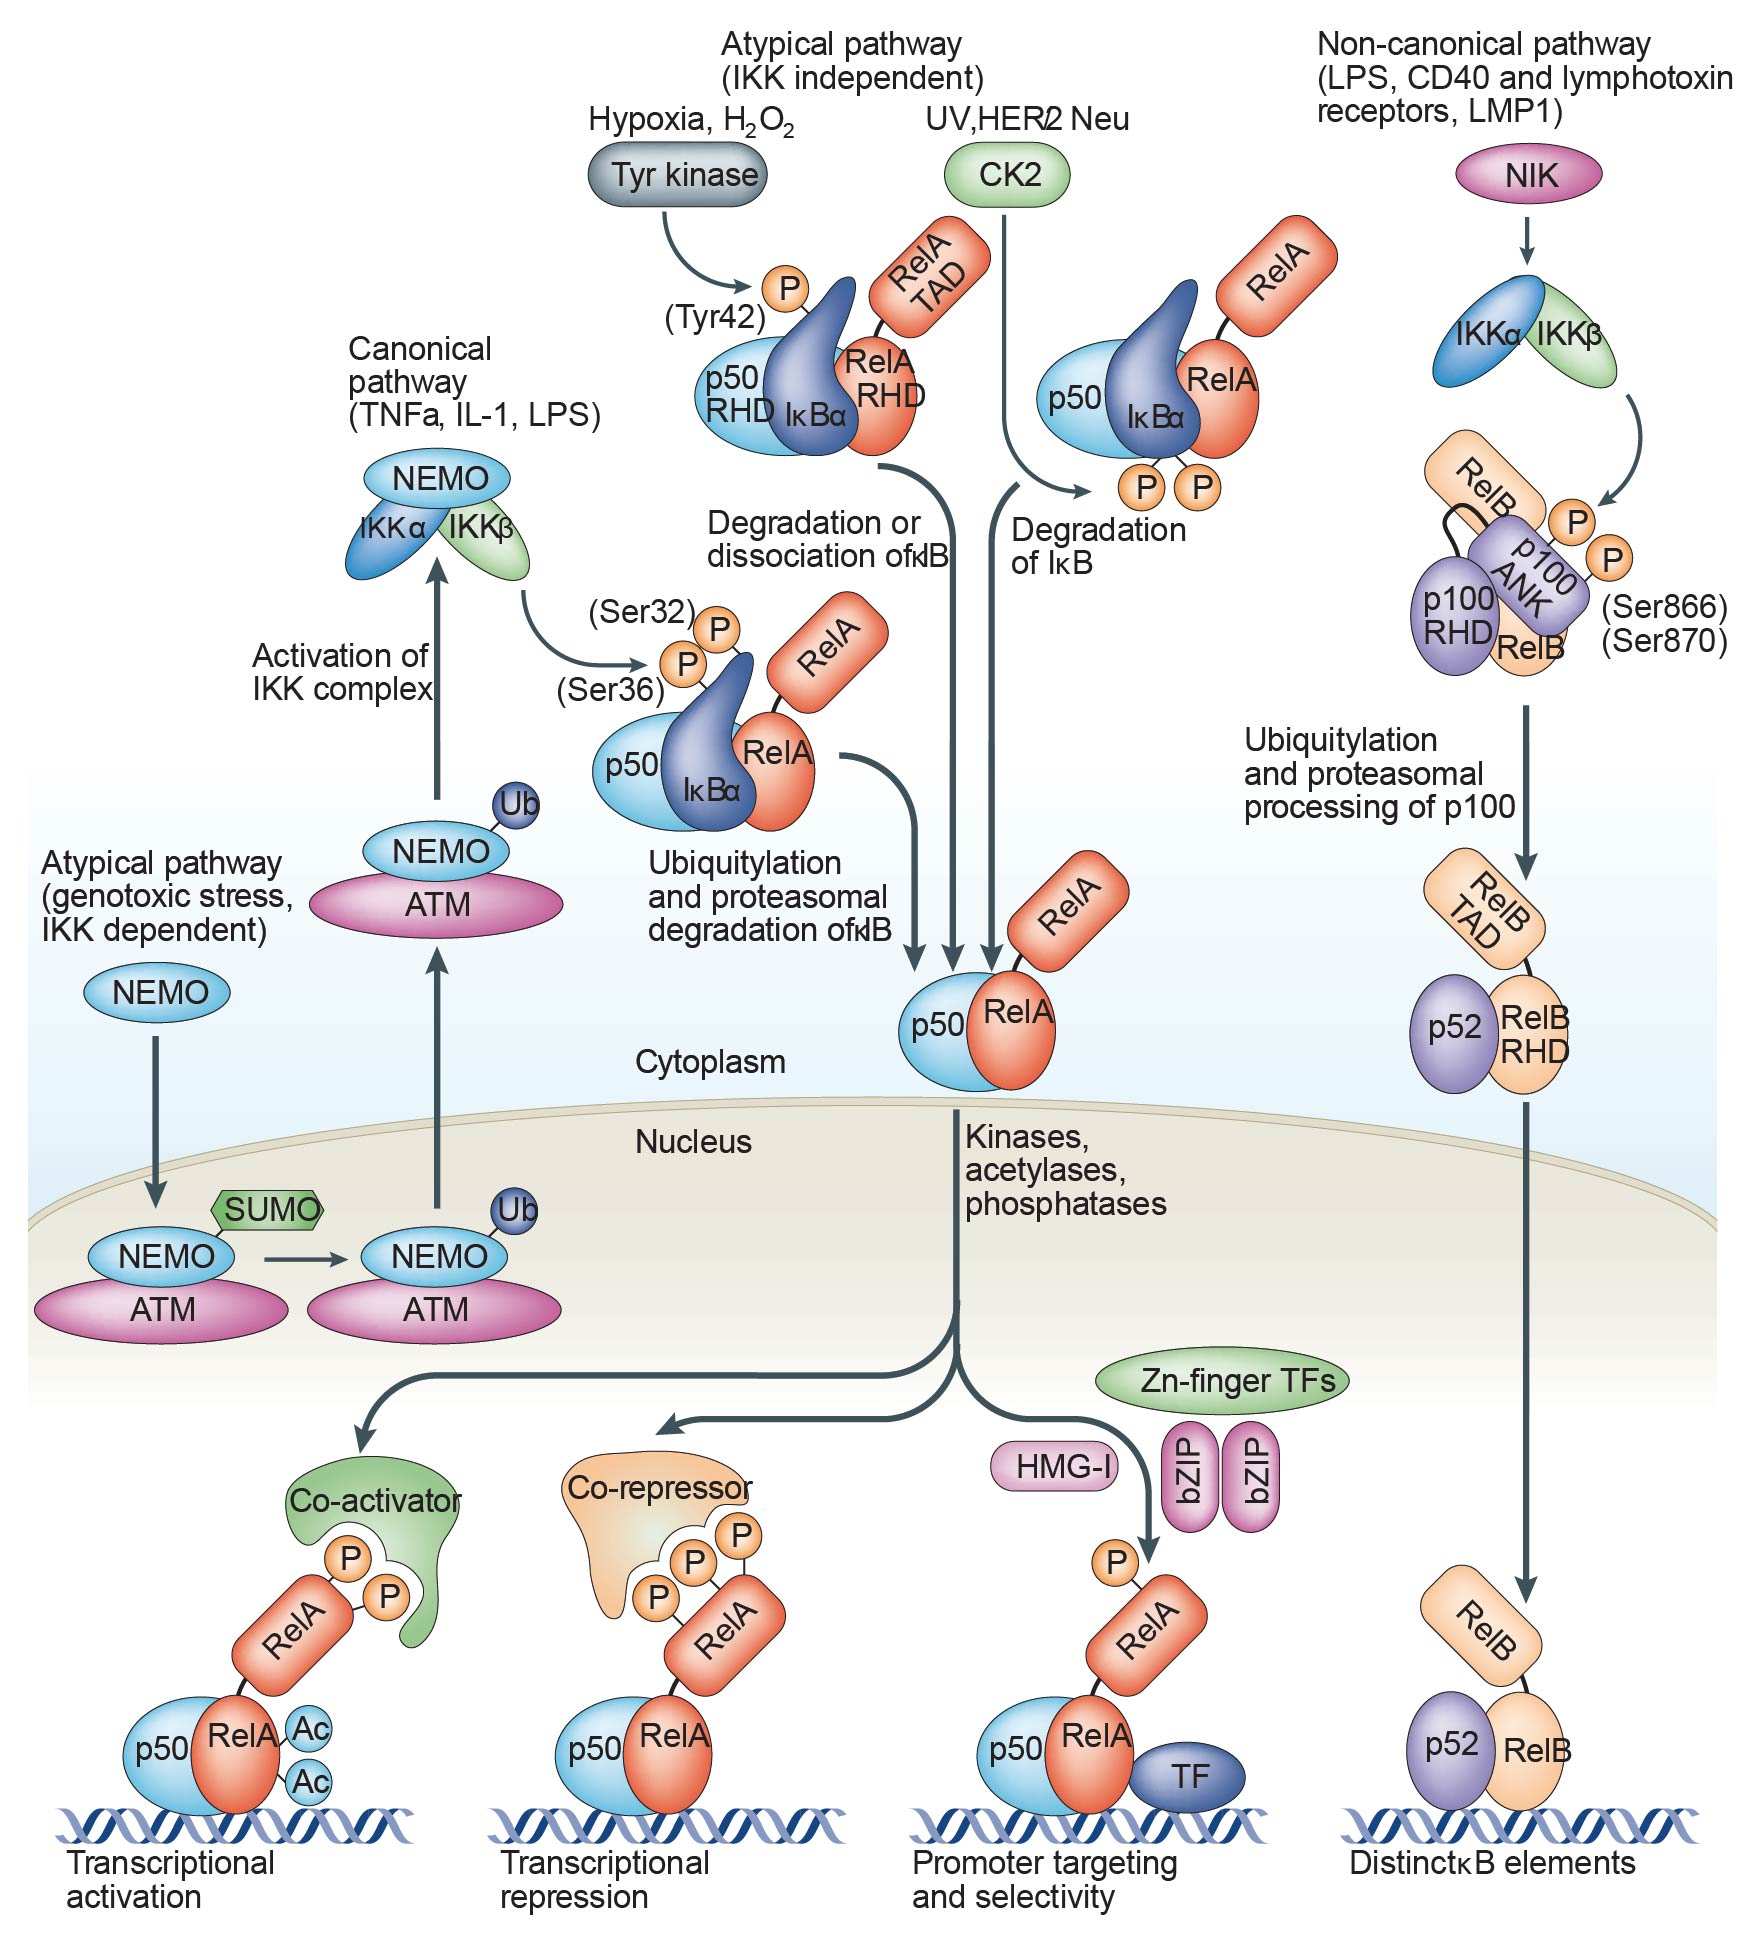 Regulation of NF-kappa B signaling by alternative splicing